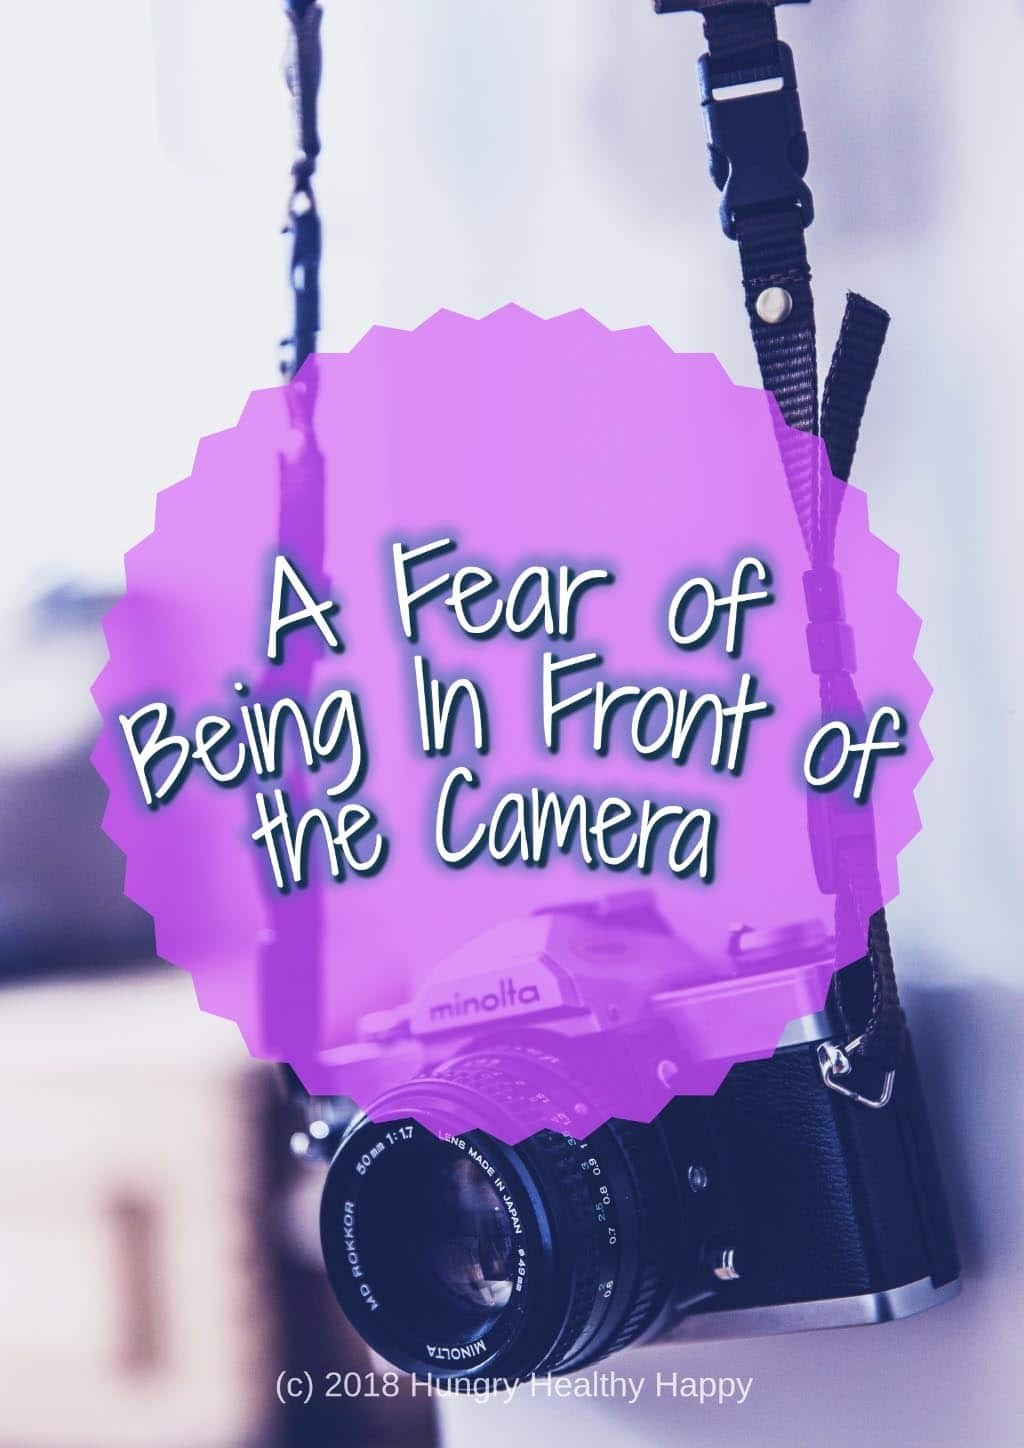 Fear of being in front of the camera title picture